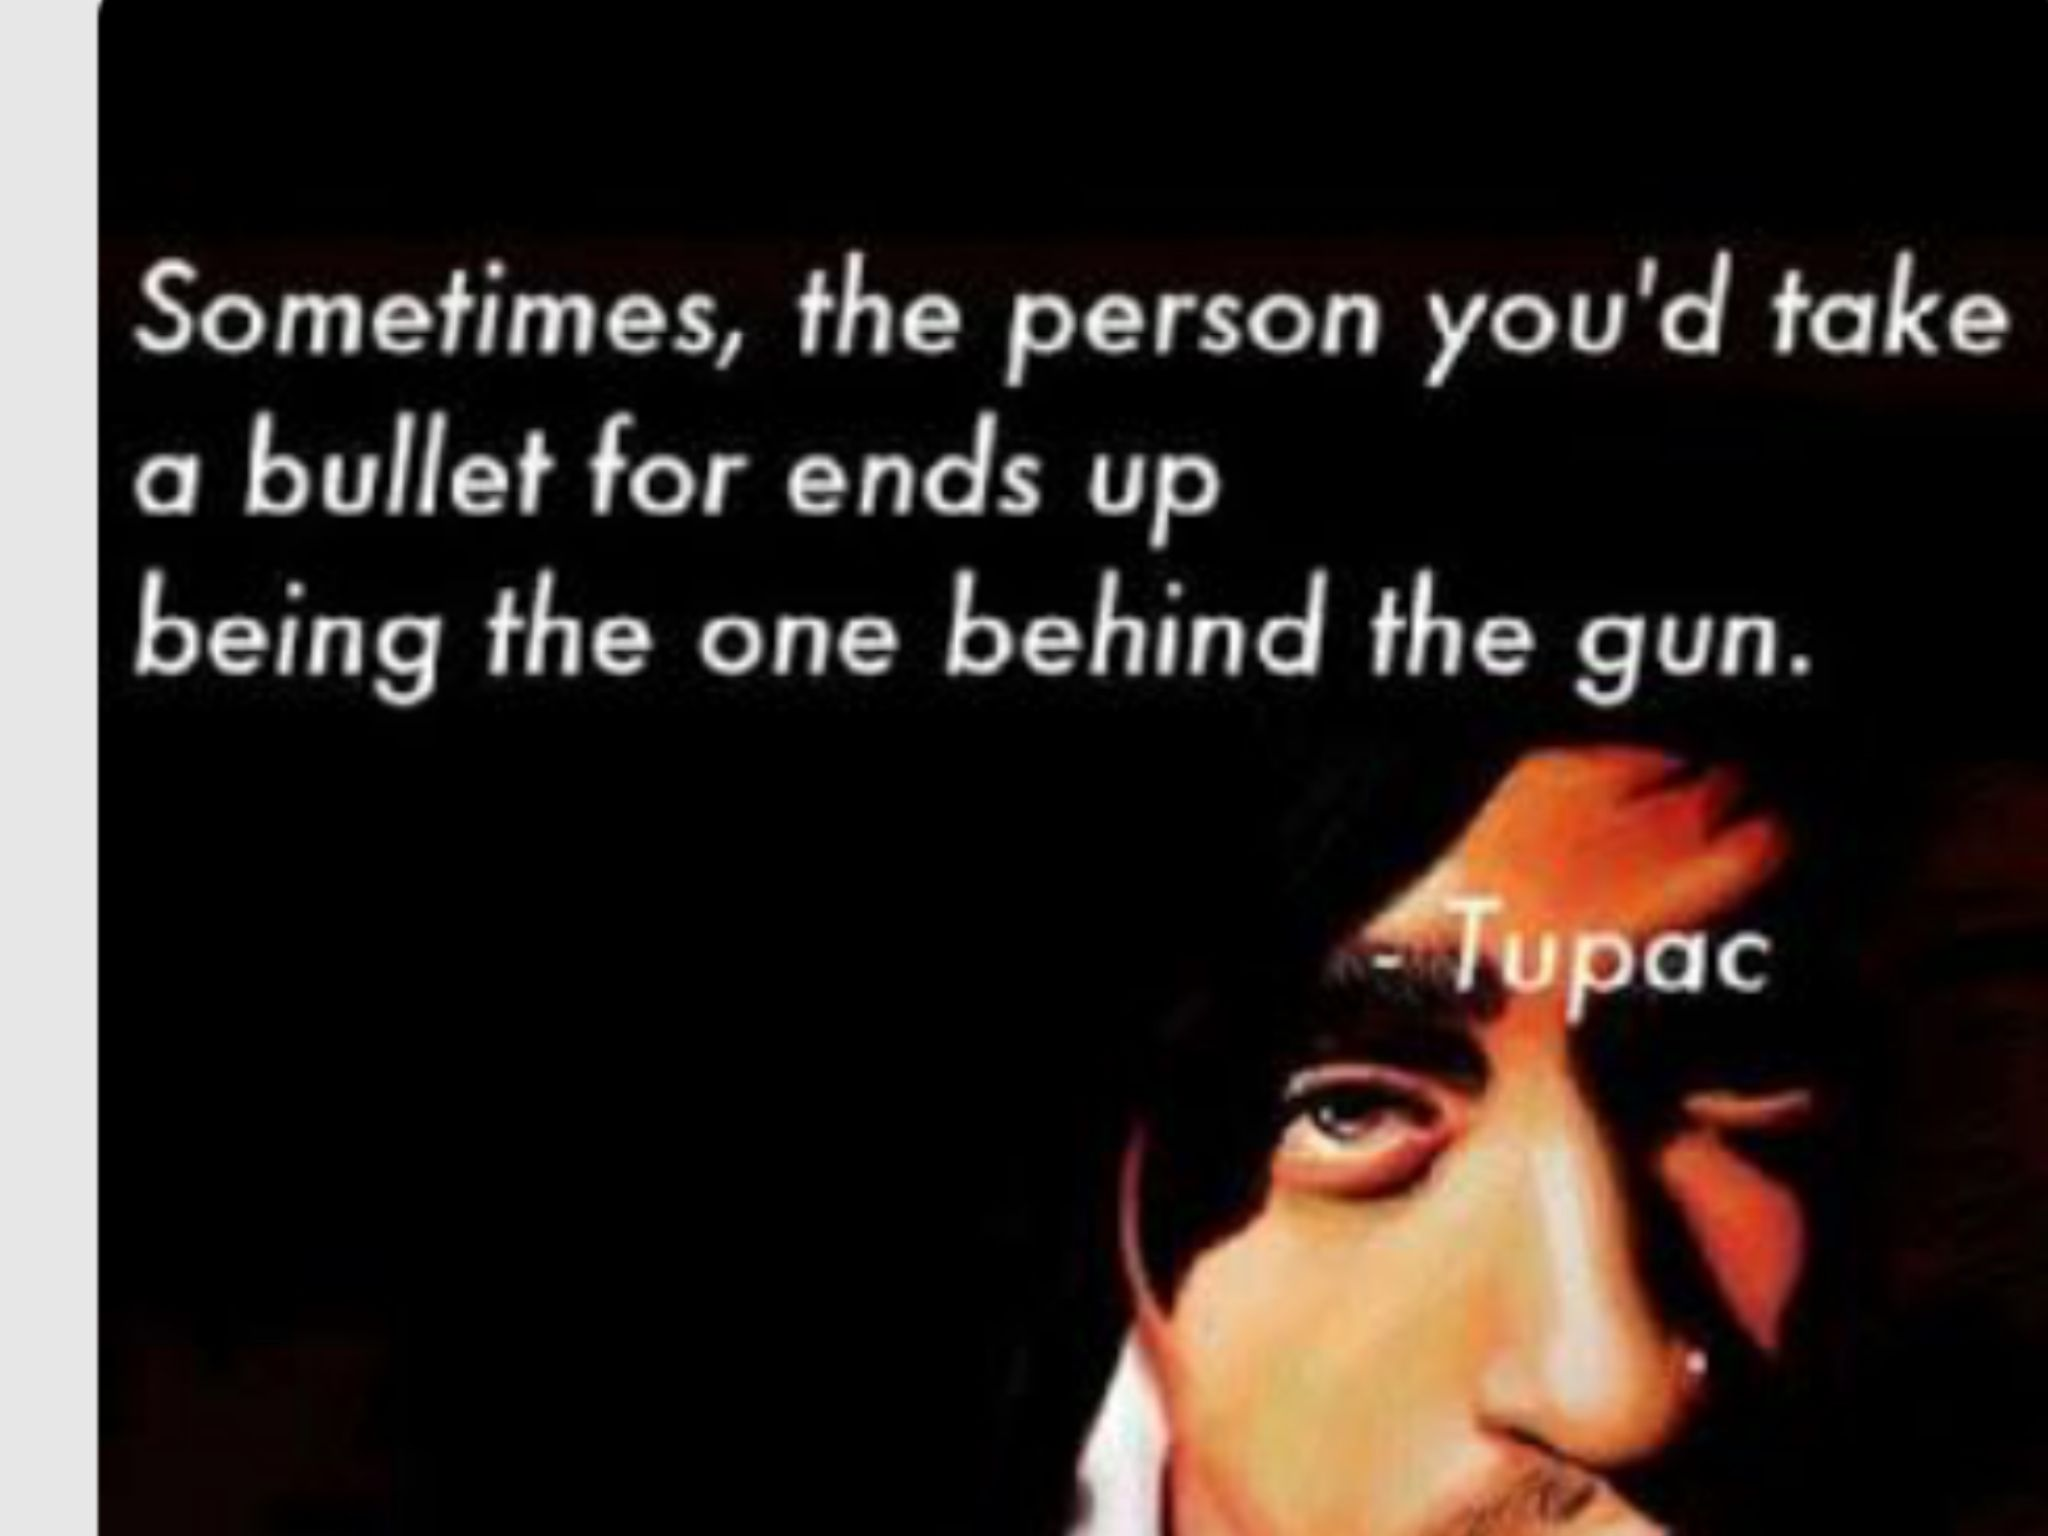 Sometimes the person you d take a bullet for ends up being the one behind the gun Tupac This is so deep